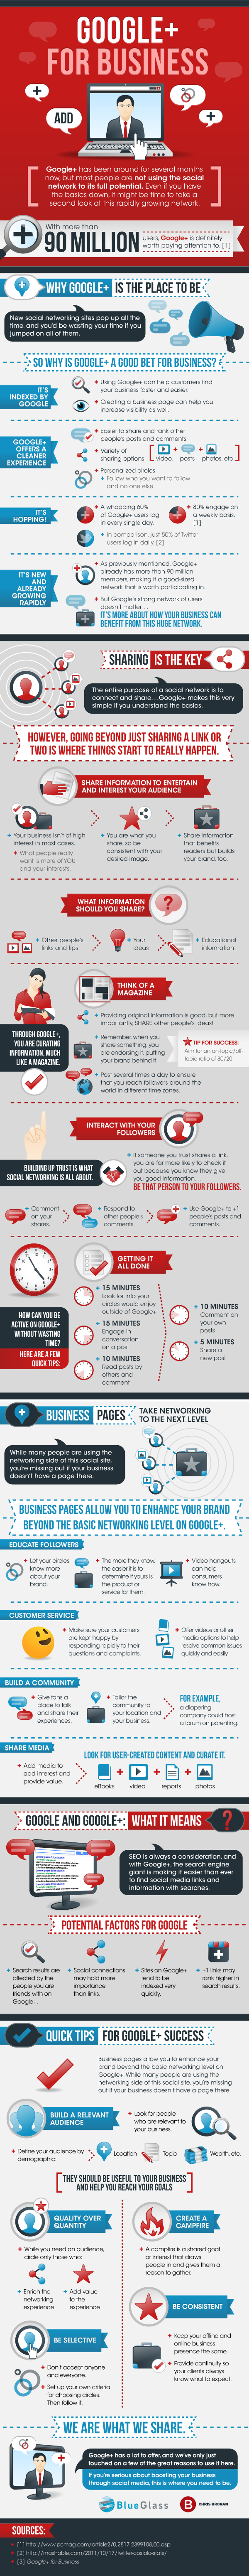 Google Plus for Business [infographic]